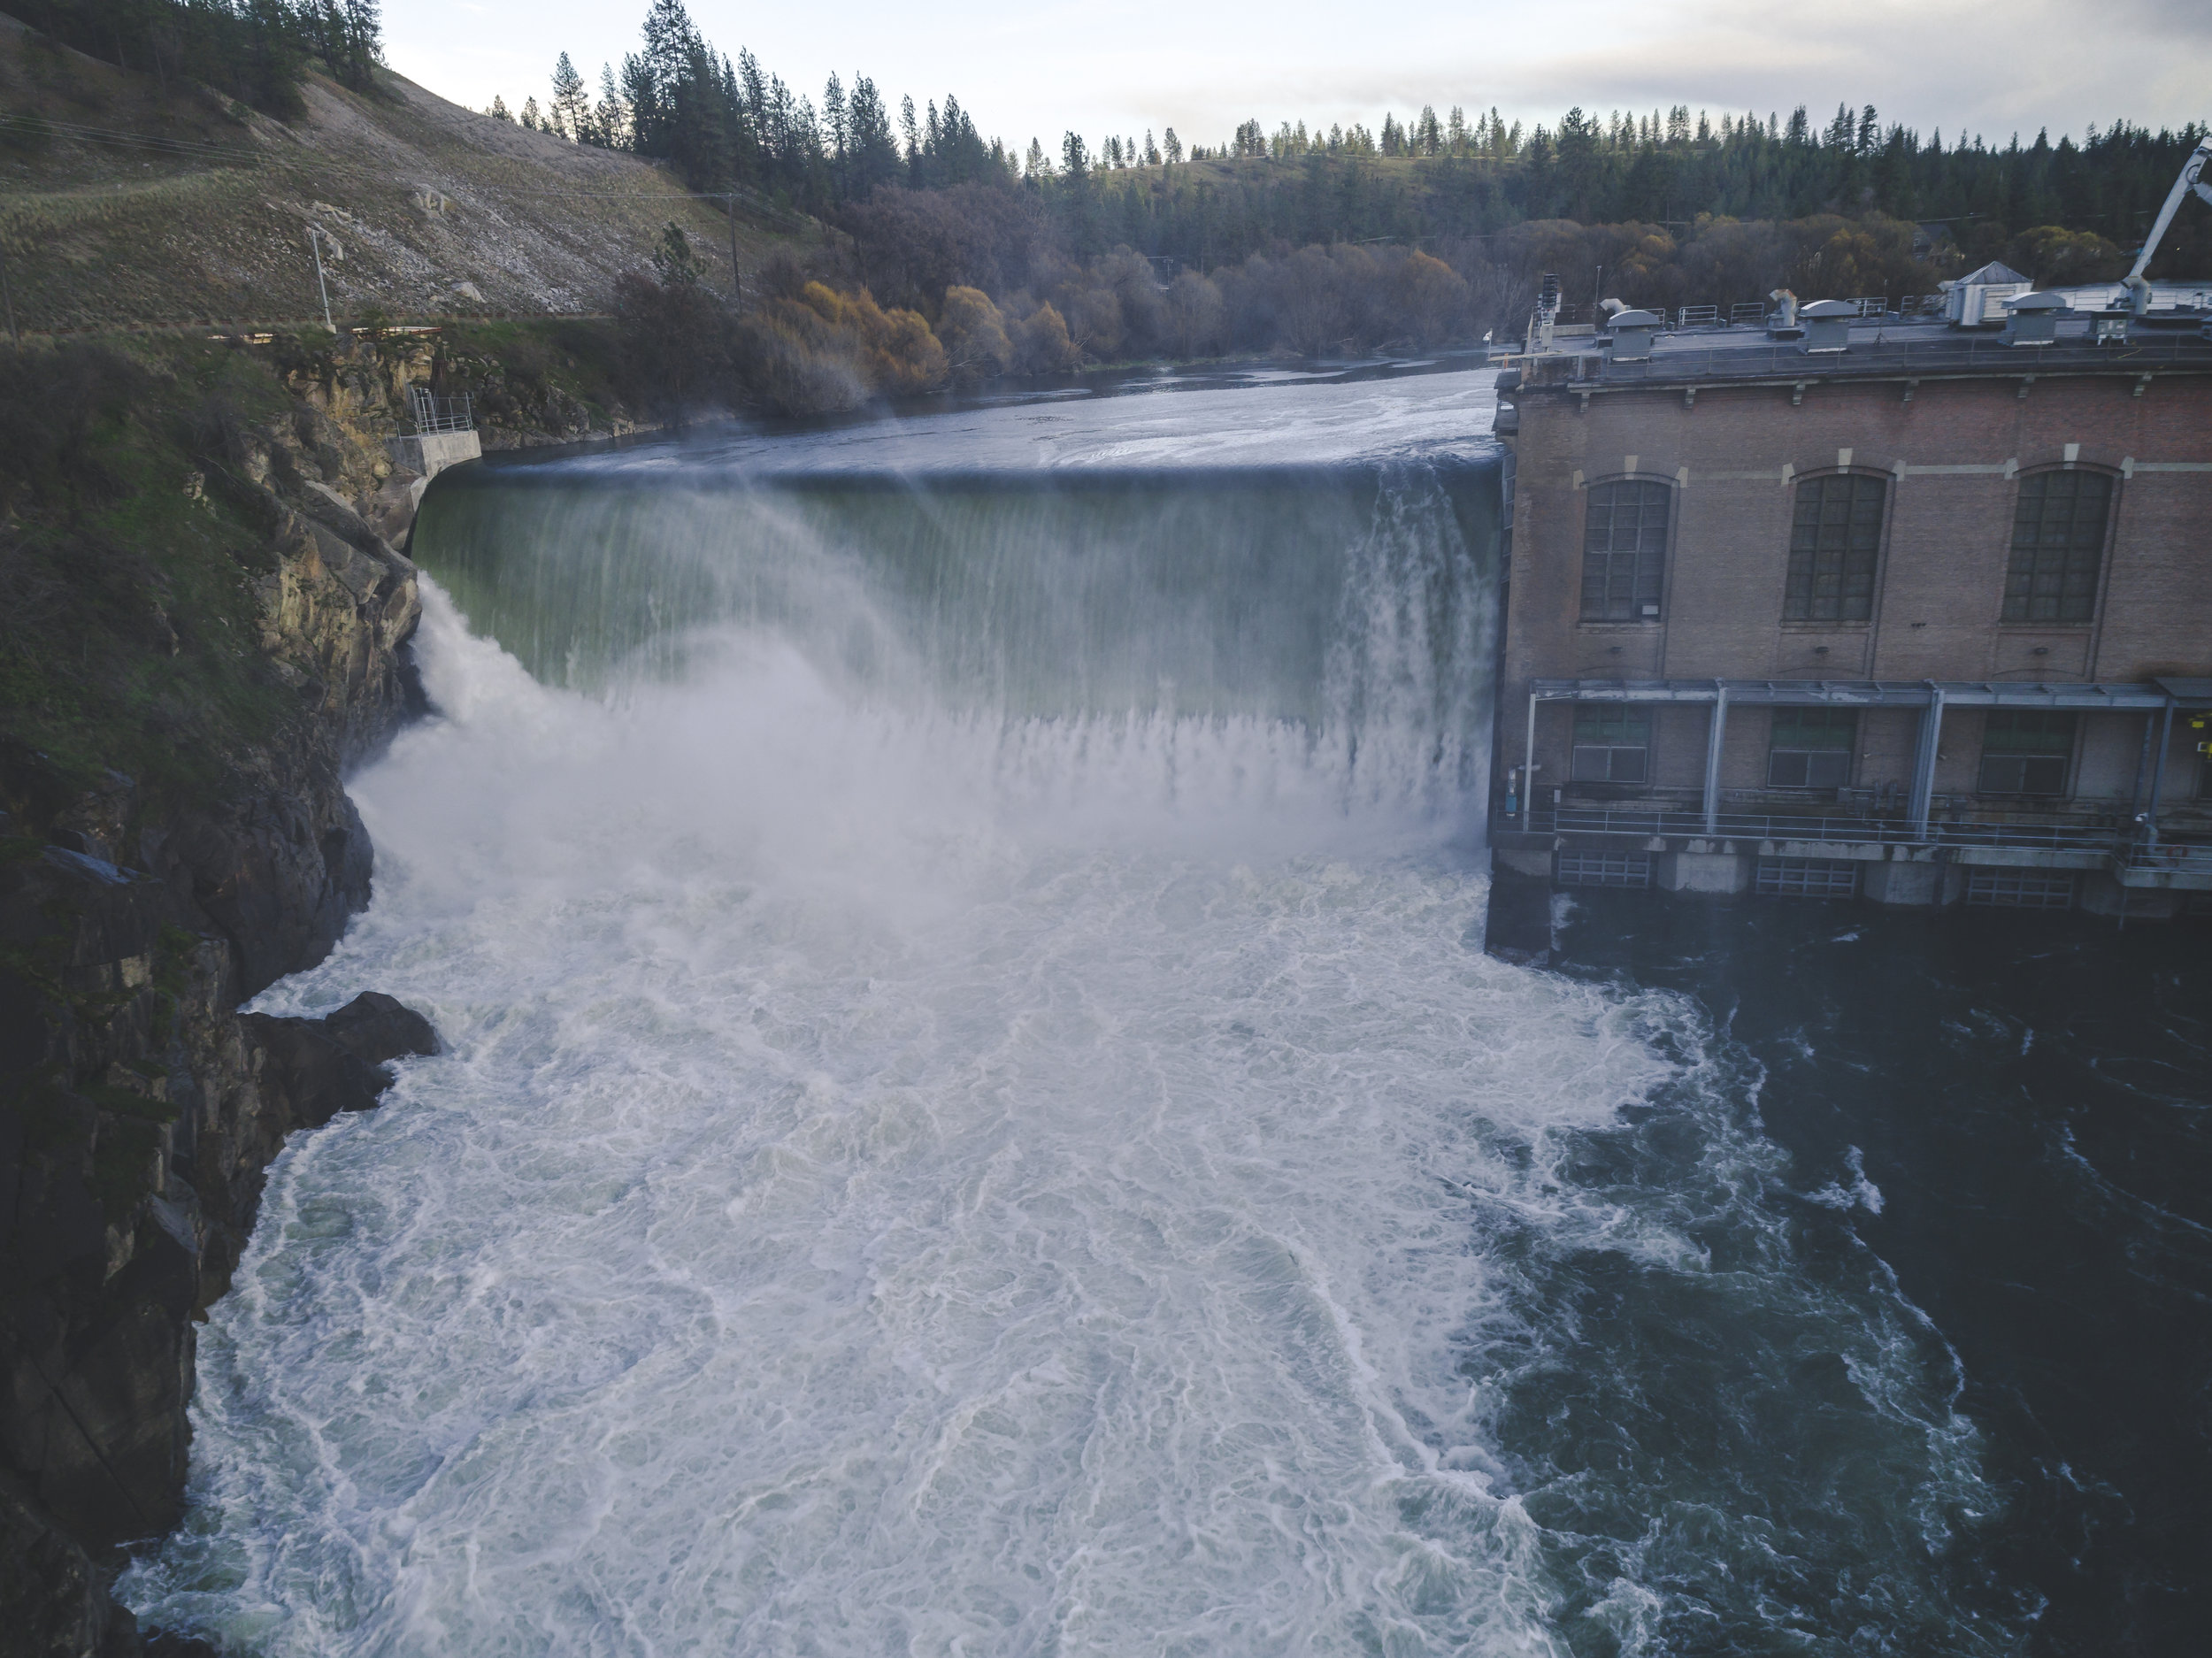 Dramatic_Old_Dam_Building_Waterfall_Aerial.jpg